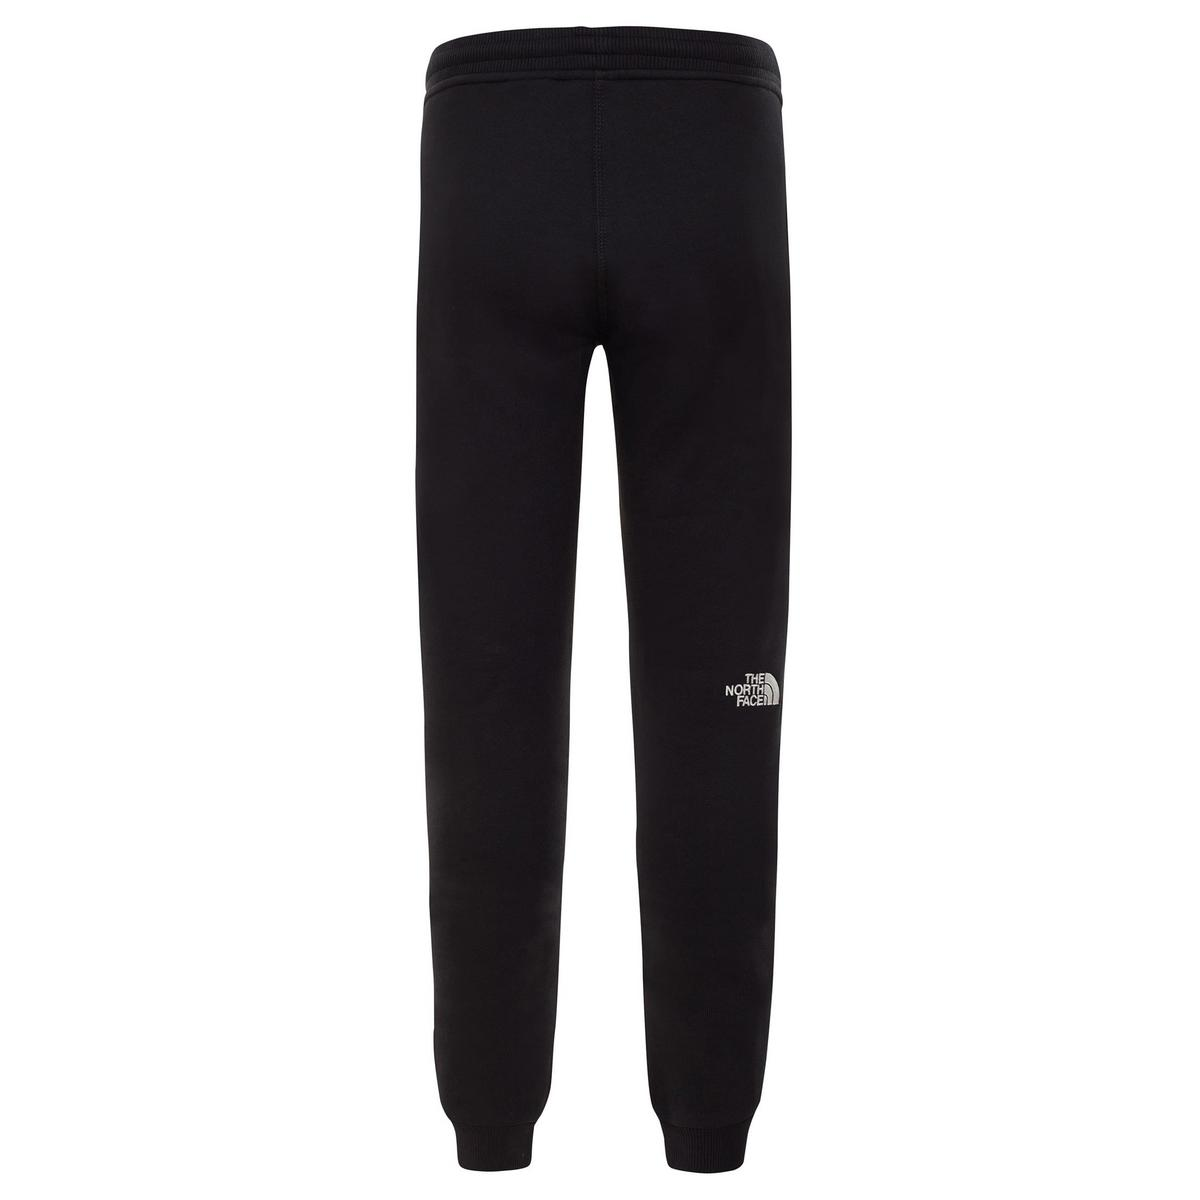 The North Face Kids' Youth Fleece Pant